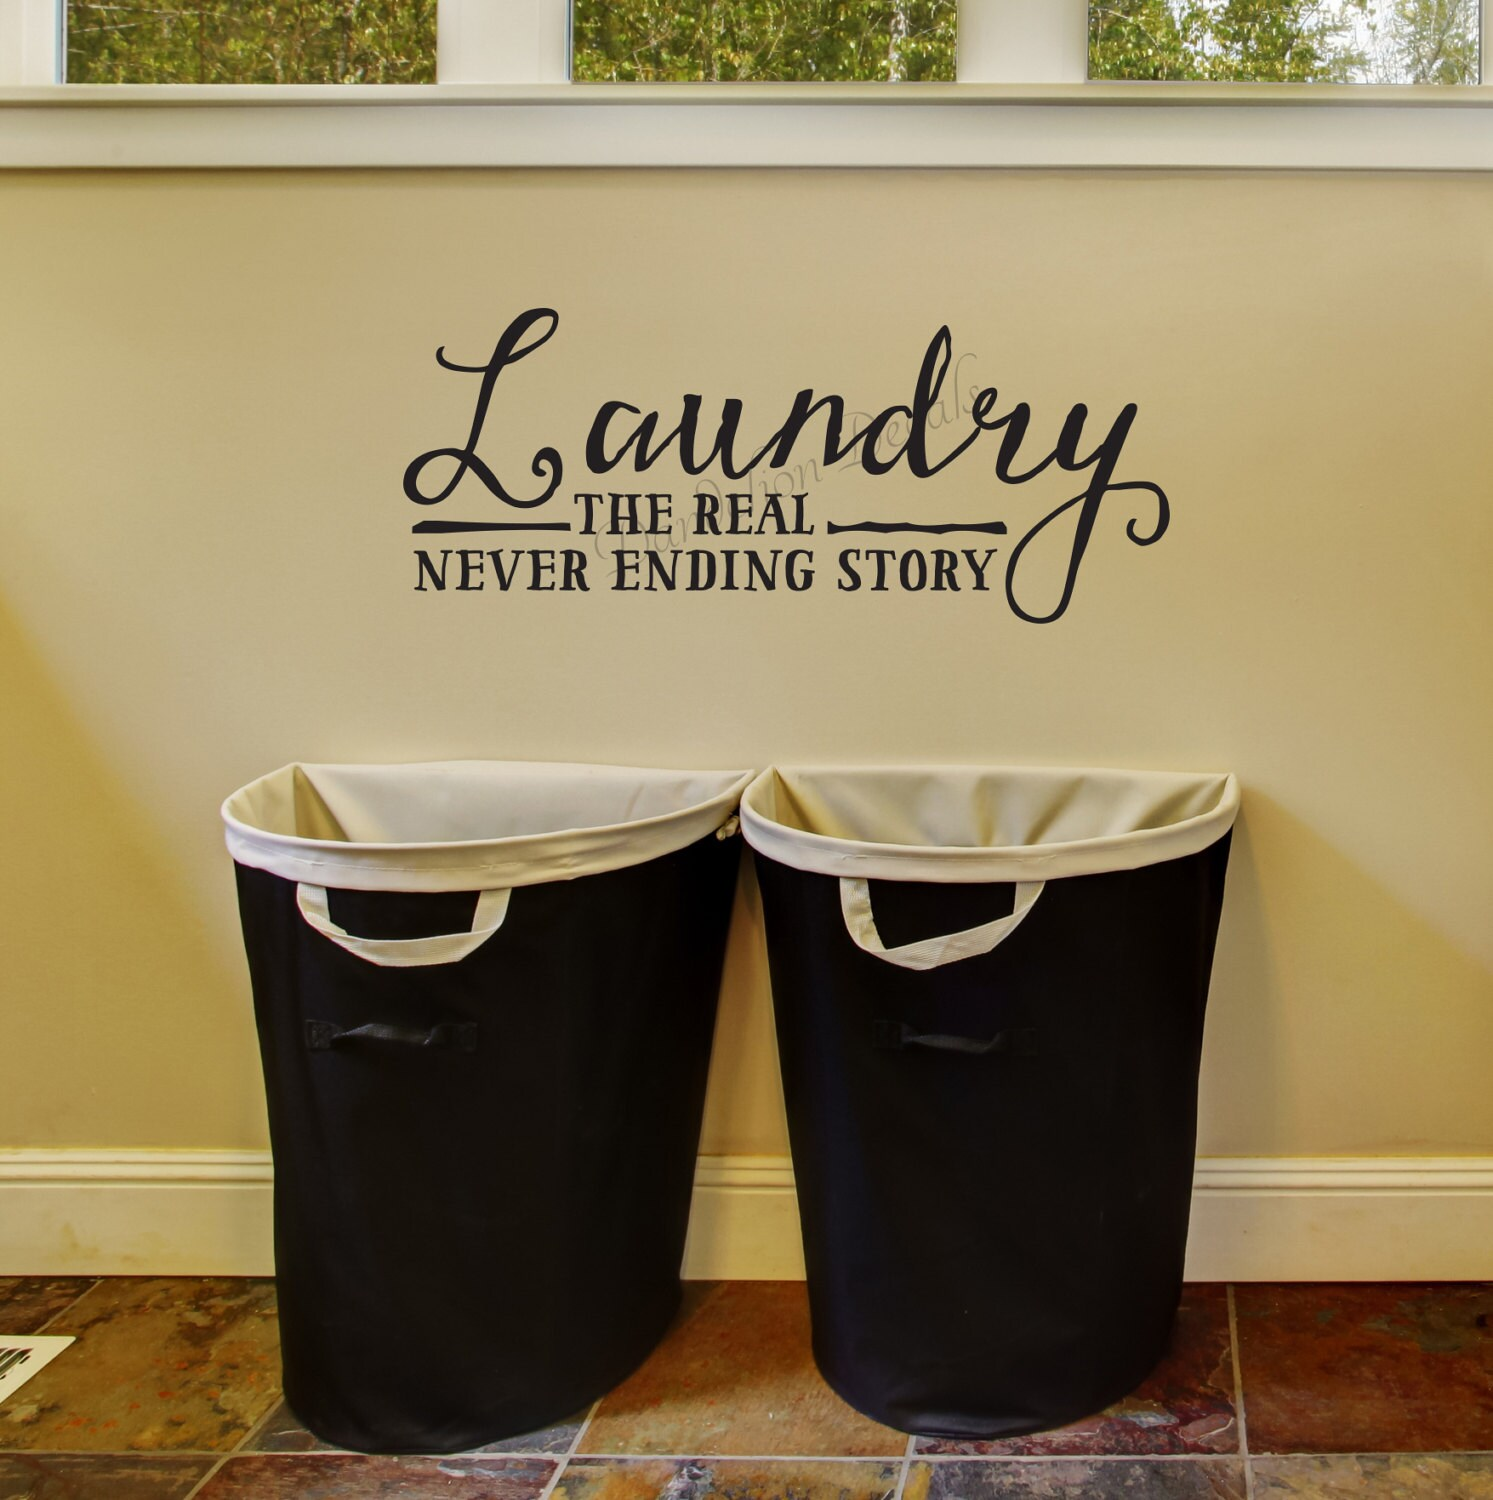 Funny Laundry Pictures Laundry The Real Never Ending Story Laundry Room Wall Decal